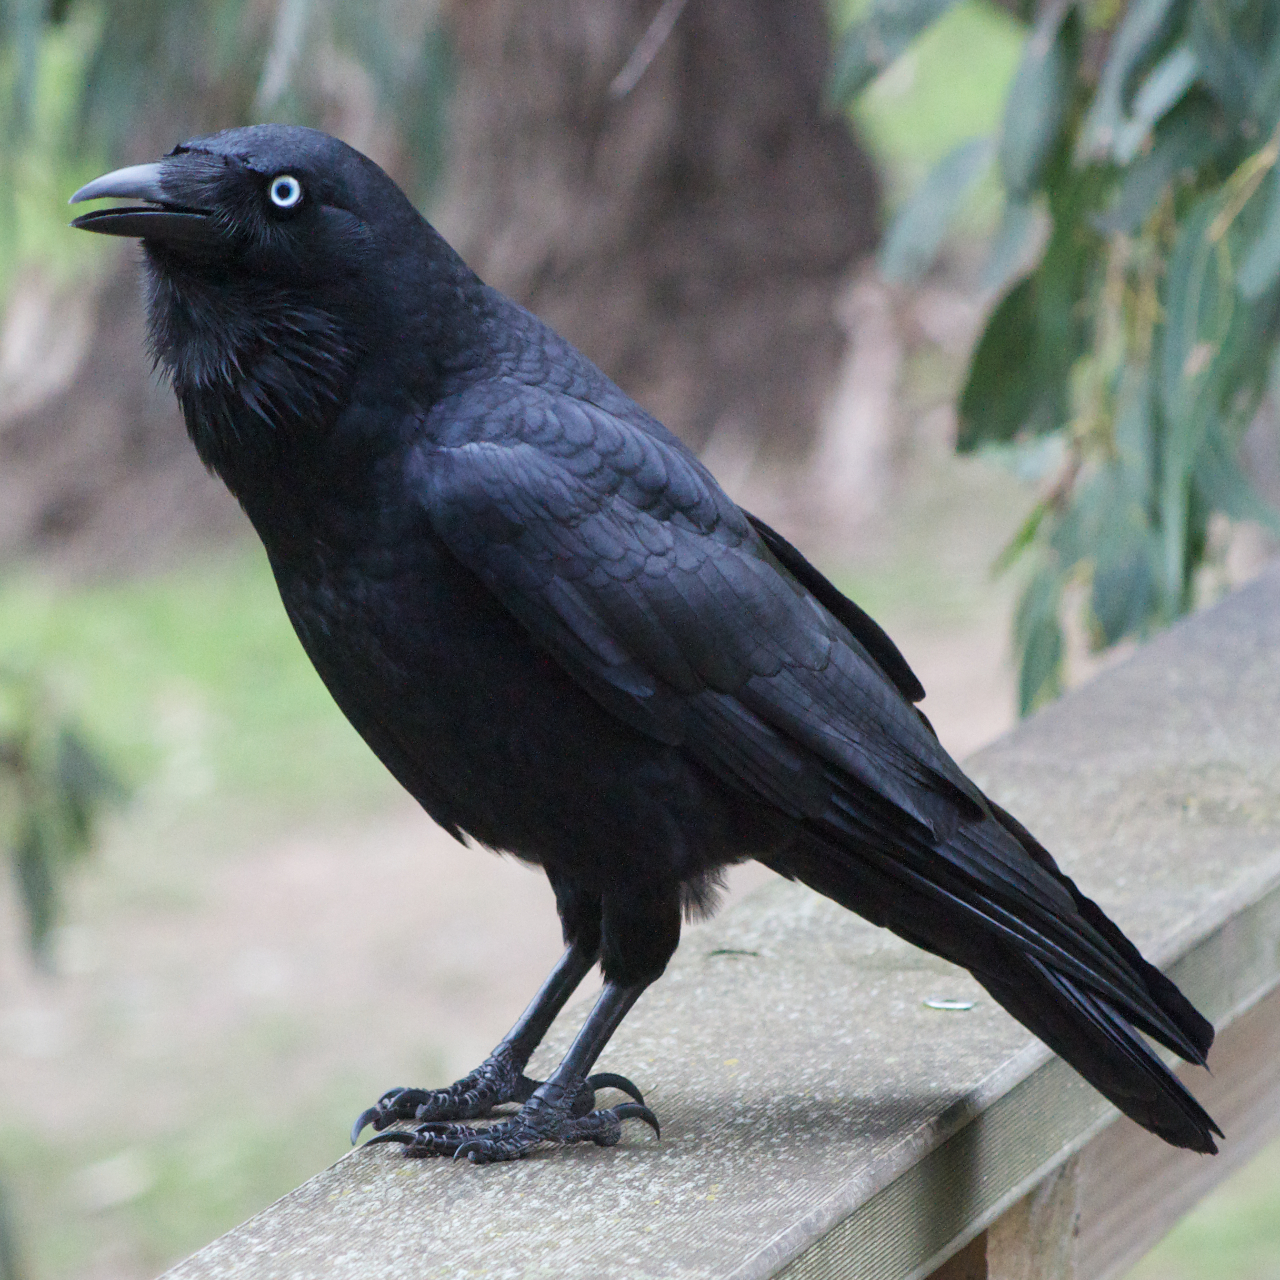 Black Raven on a Porch 111.19 Kb